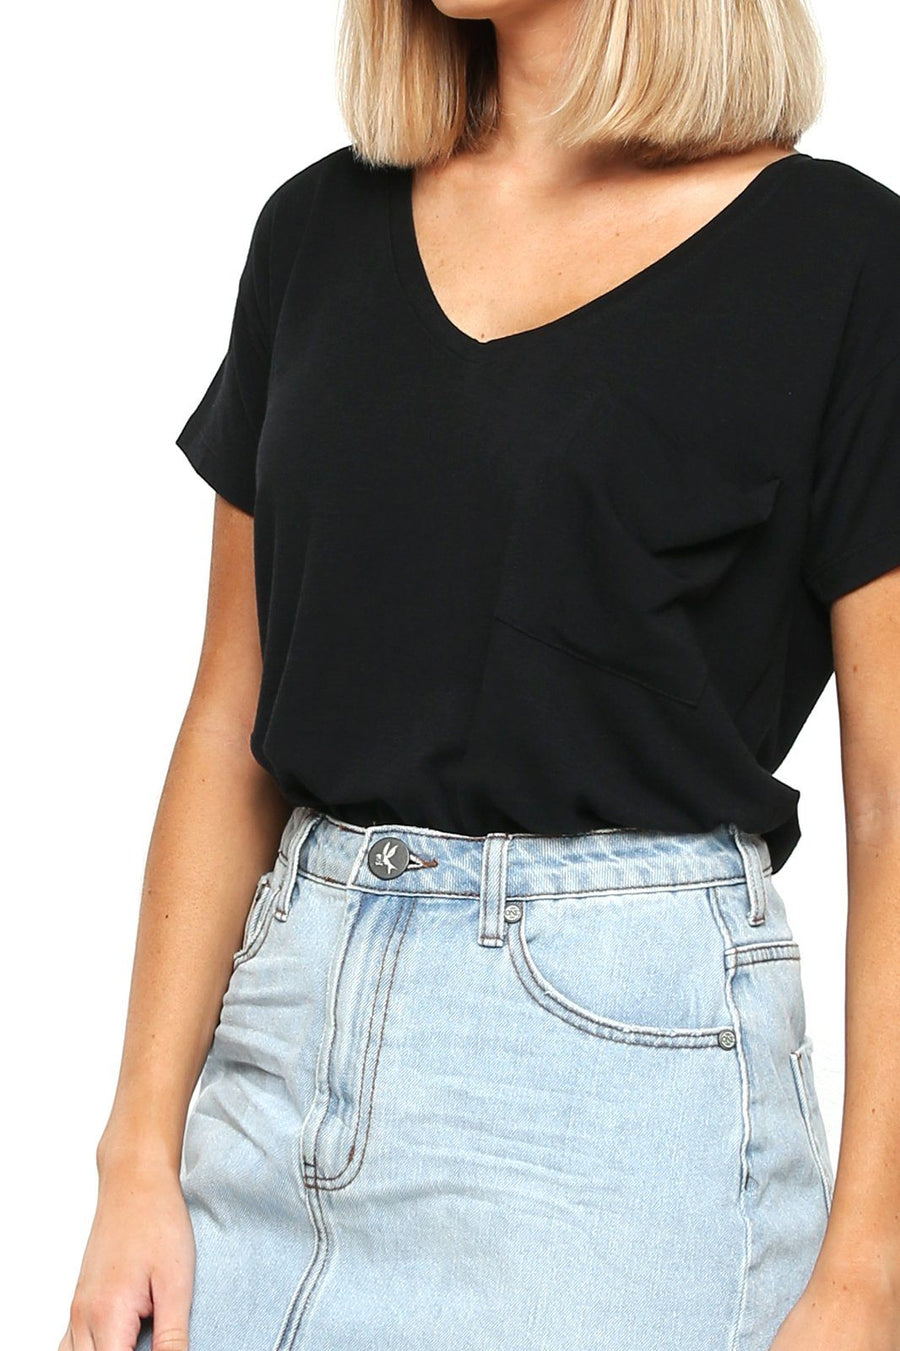 Women's Pocket Tee - Black - Shore